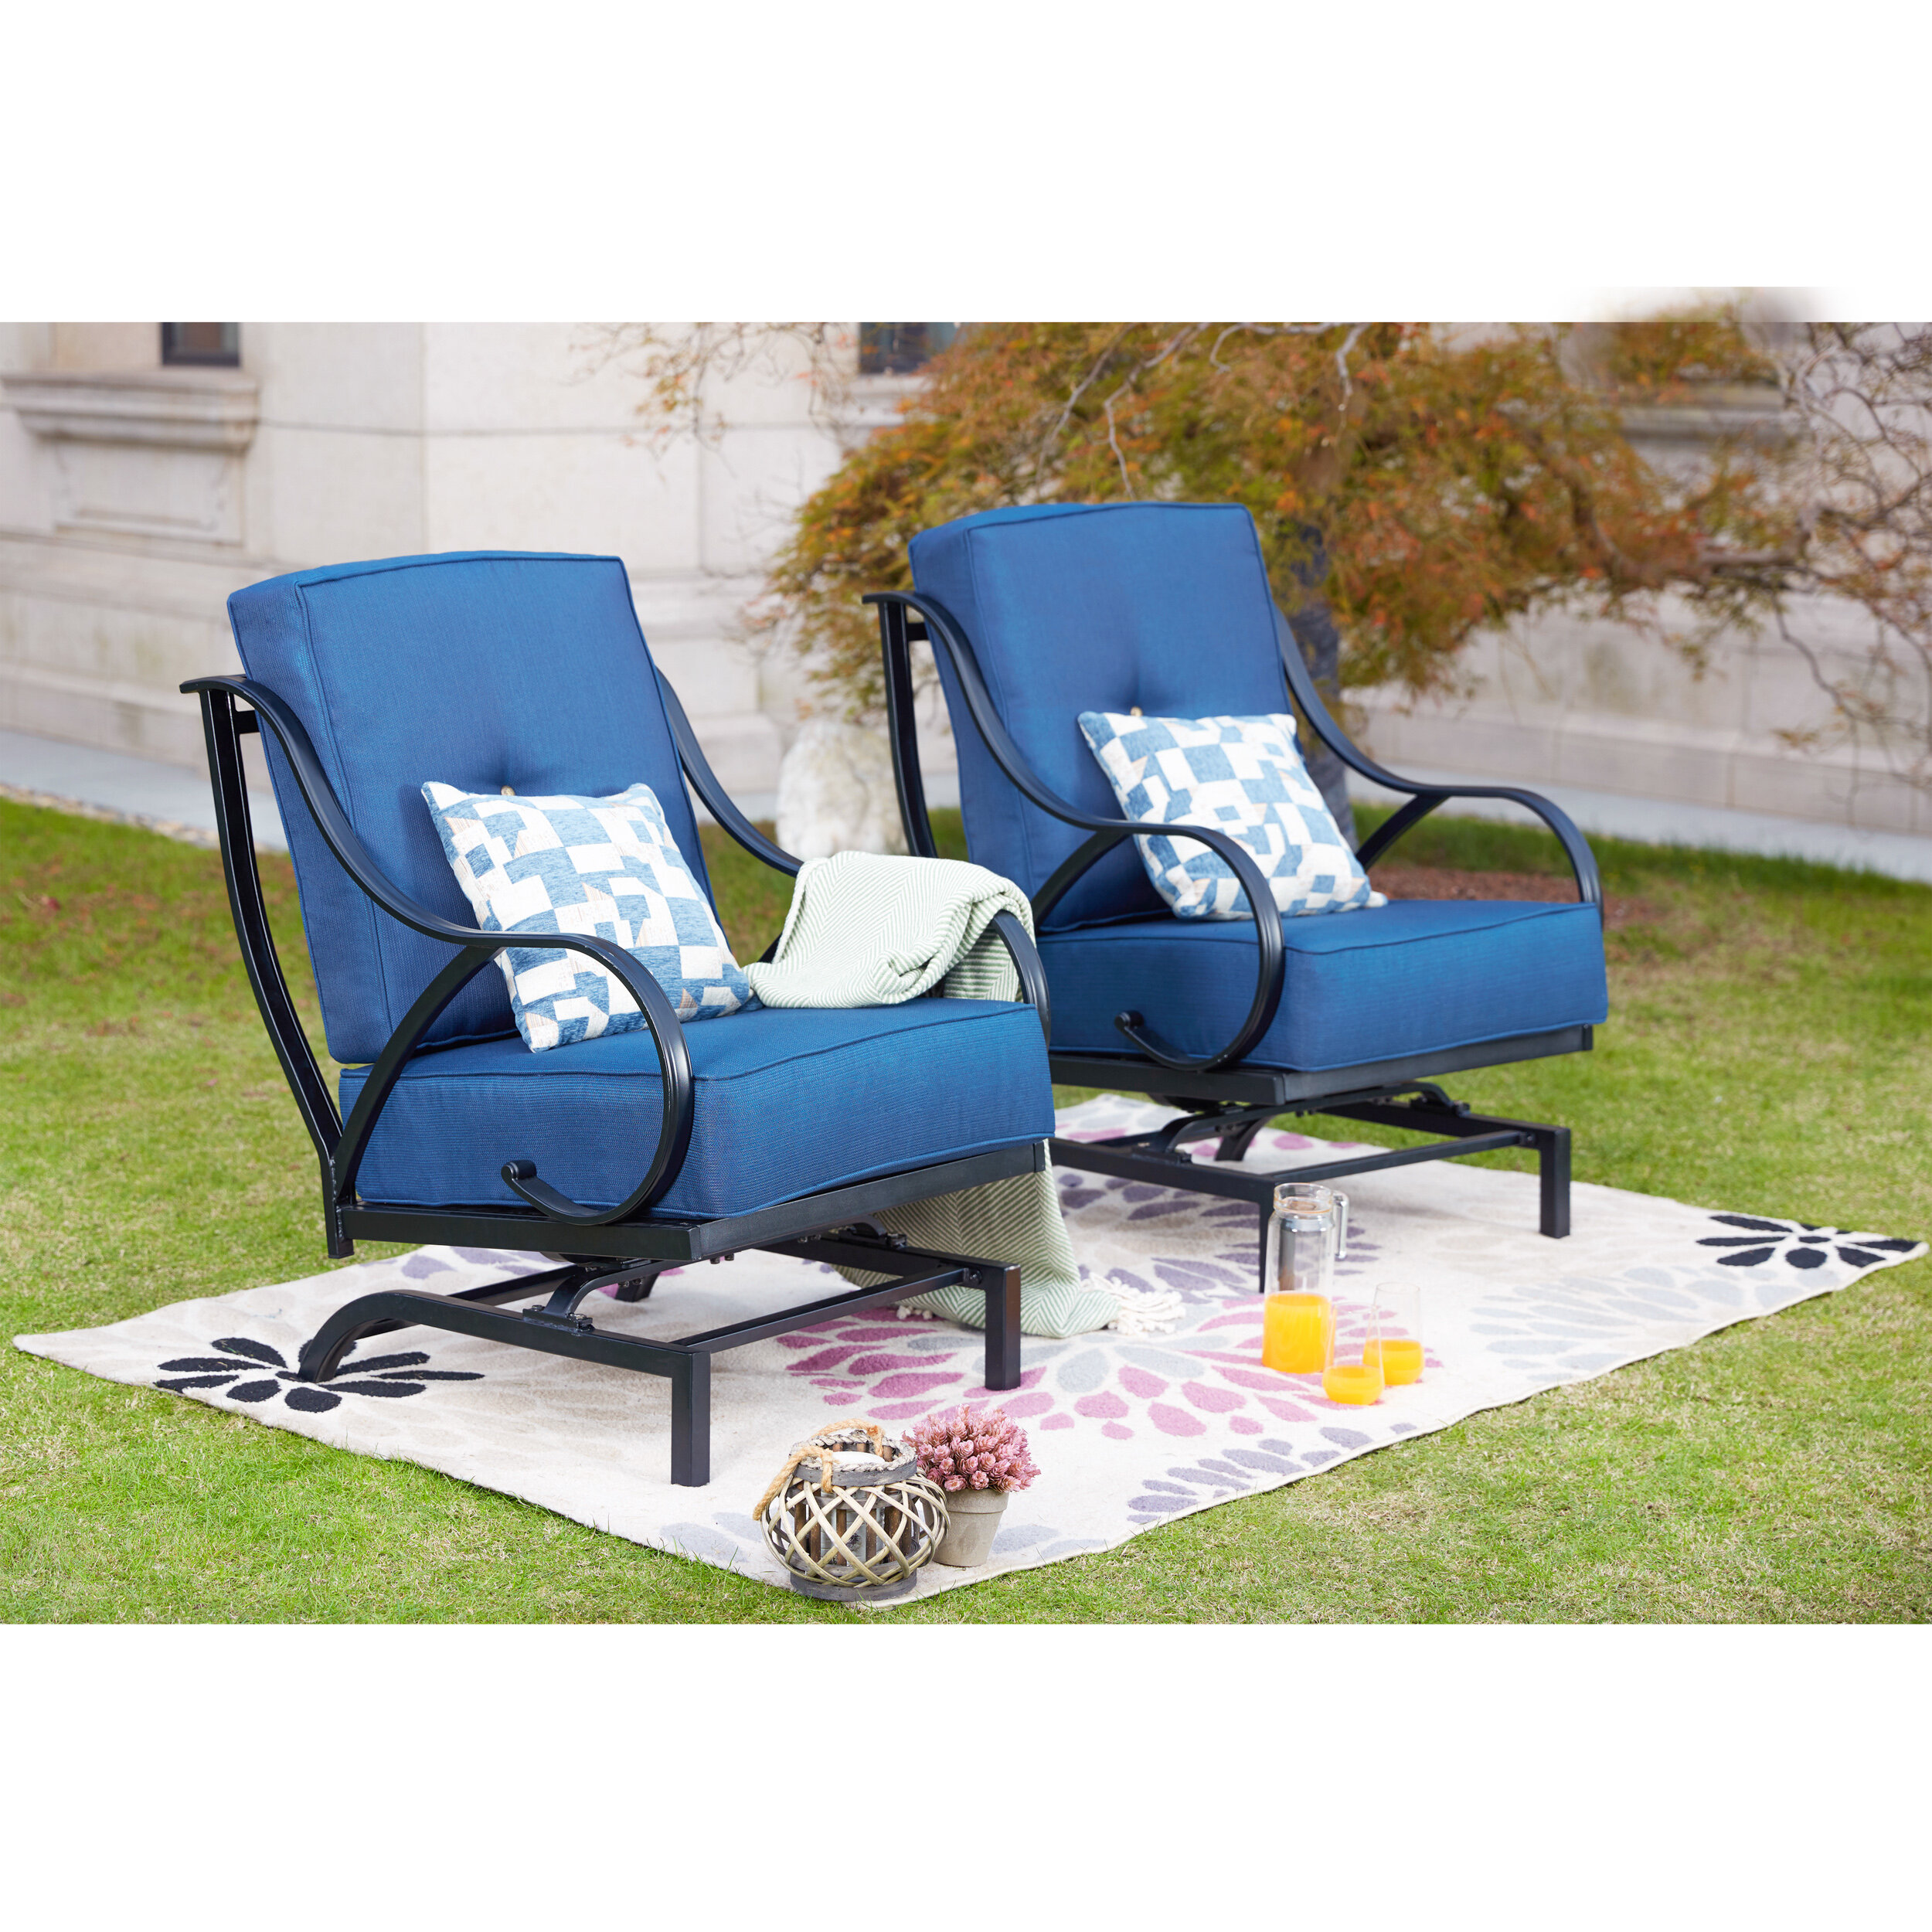 Allstate Patio Furniture.Reid Outdoor Rocking Motion Patio Chair With Cushions